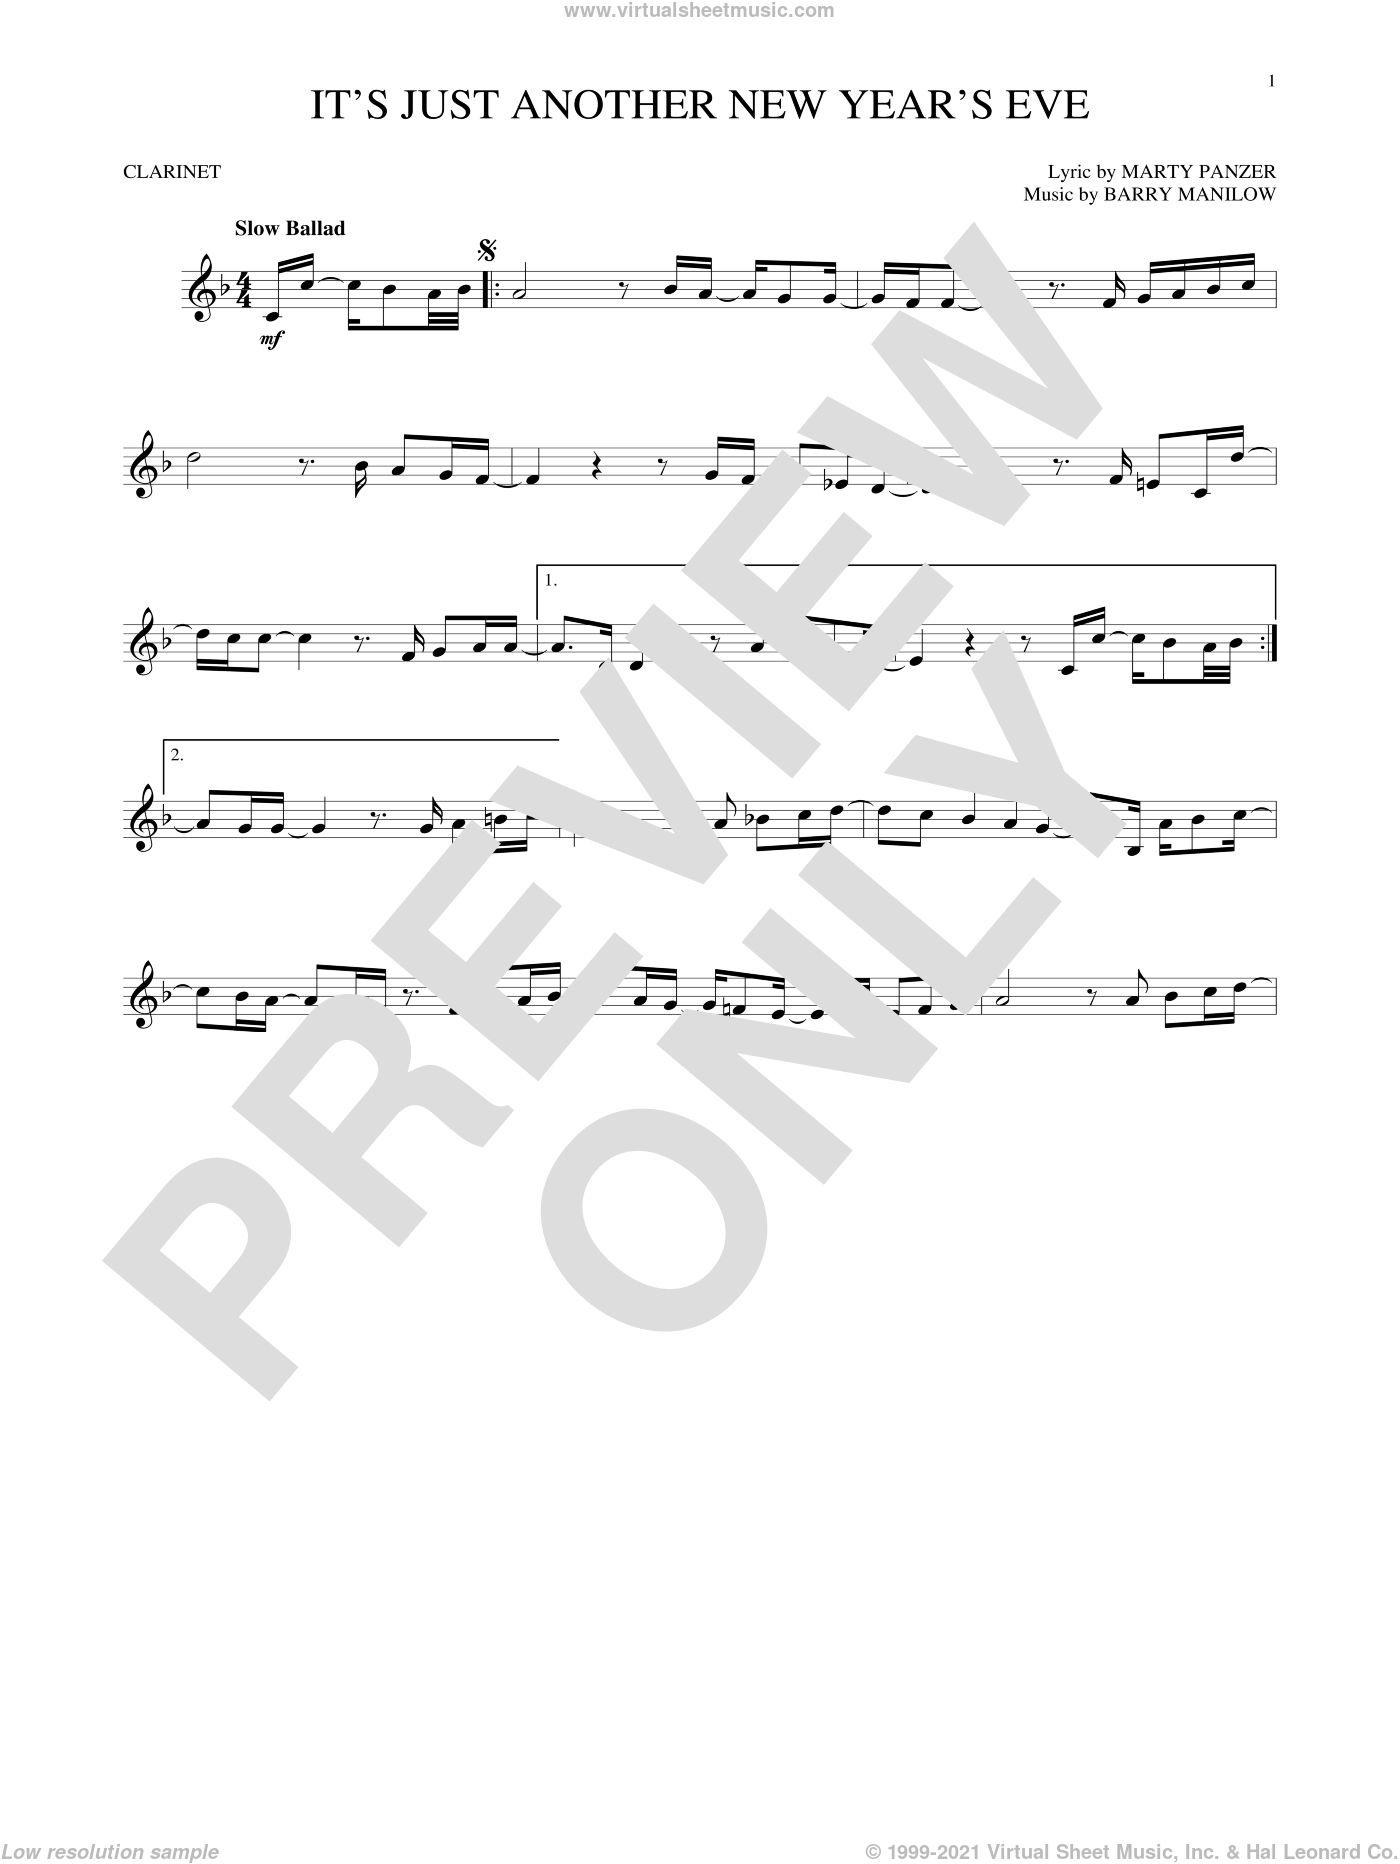 It's Just Another New Year's Eve sheet music for clarinet solo by Marty Panzer